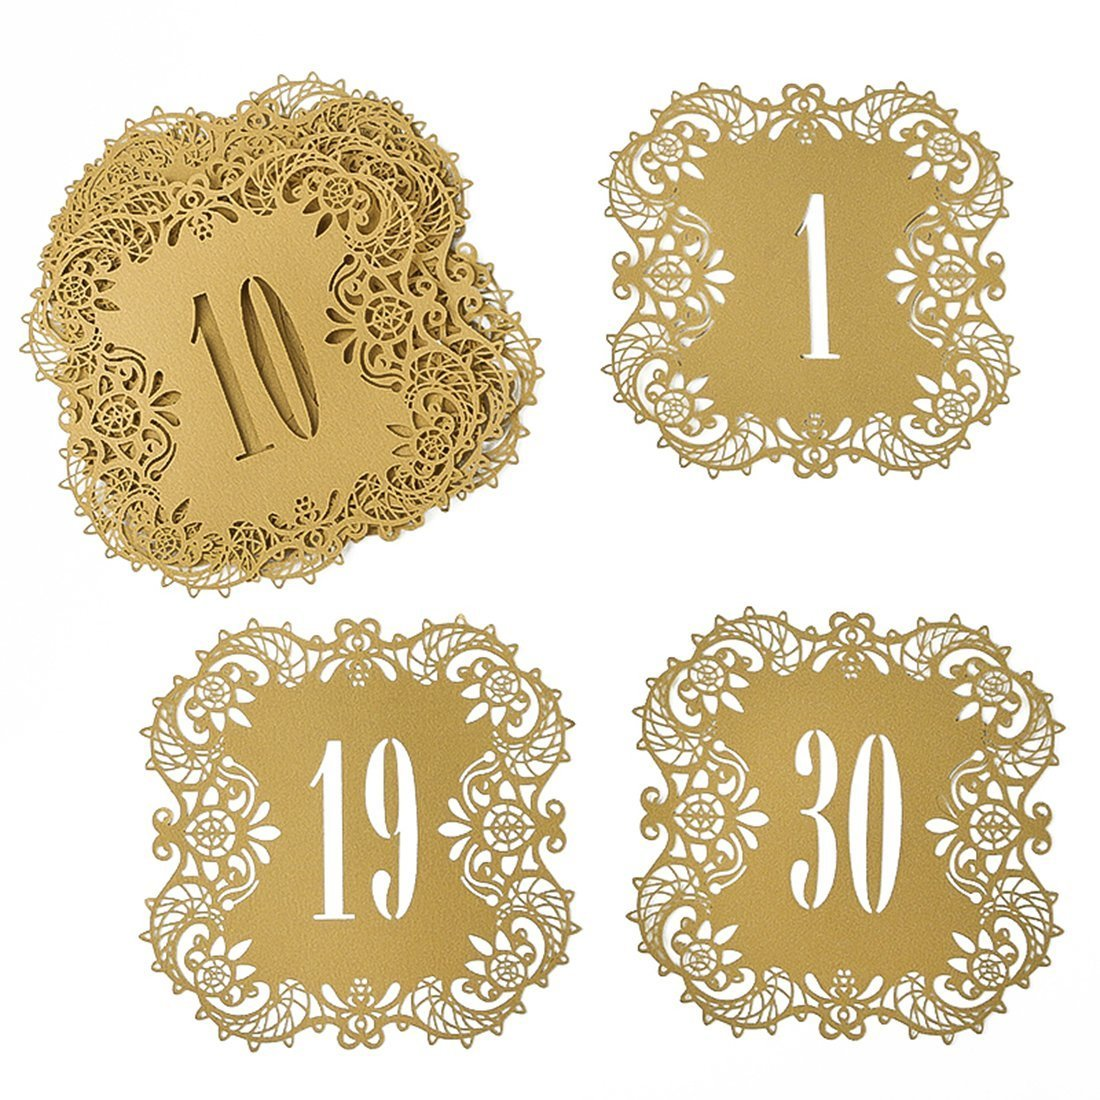 Hyaline&Dora Laser Cut Wedding Table Card Numbers Lace Table Cards for Wedding Reception Party Favors (Beige Gold number1-10) LTD